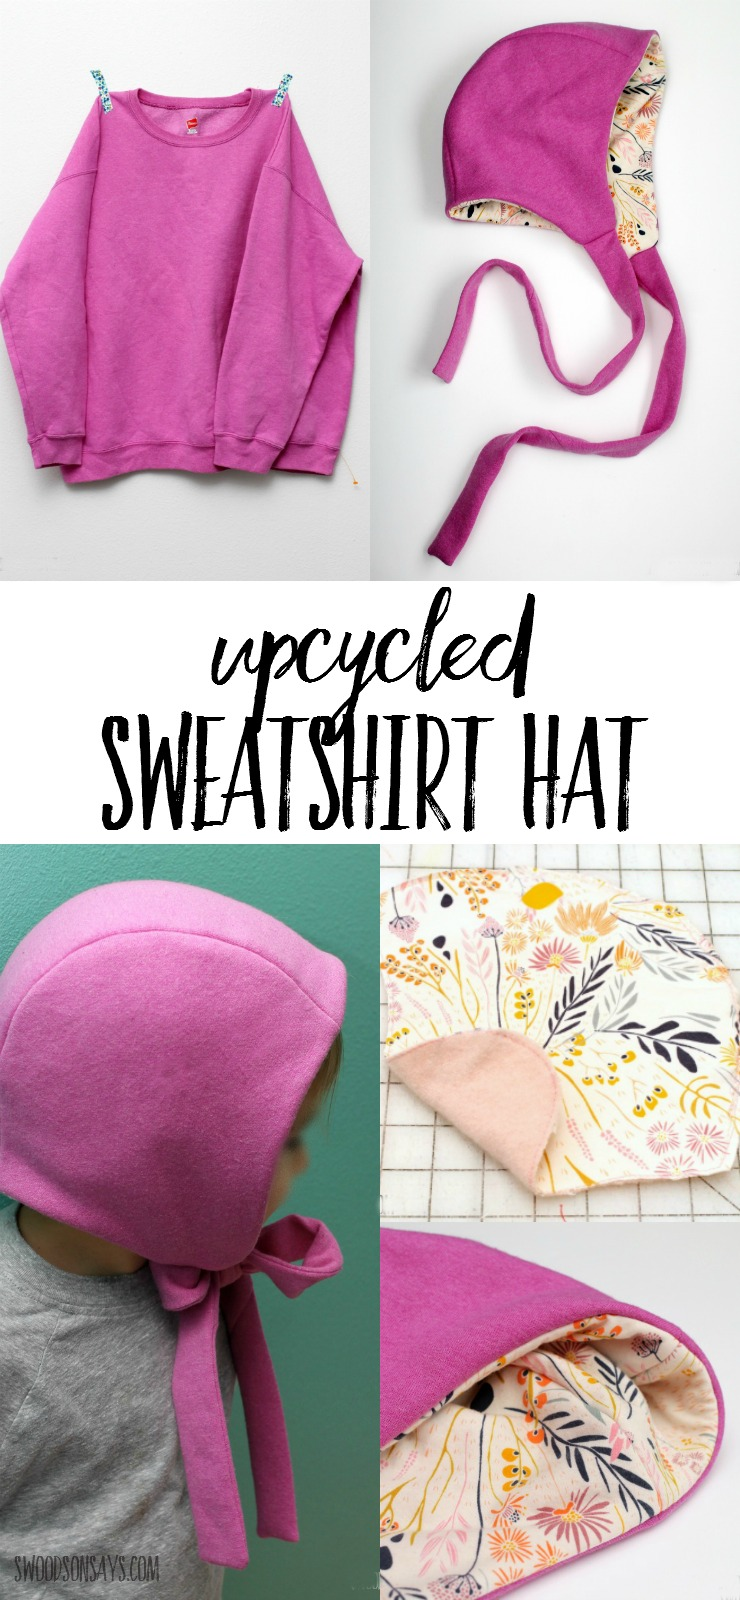 Ideas for sweater upcycling aren't always this cute; see how a frumpy sweatshirt turned into the coziest winter hat ever, with a hidden wool layer! Recycle sweater hats are cozy and cheap to make.